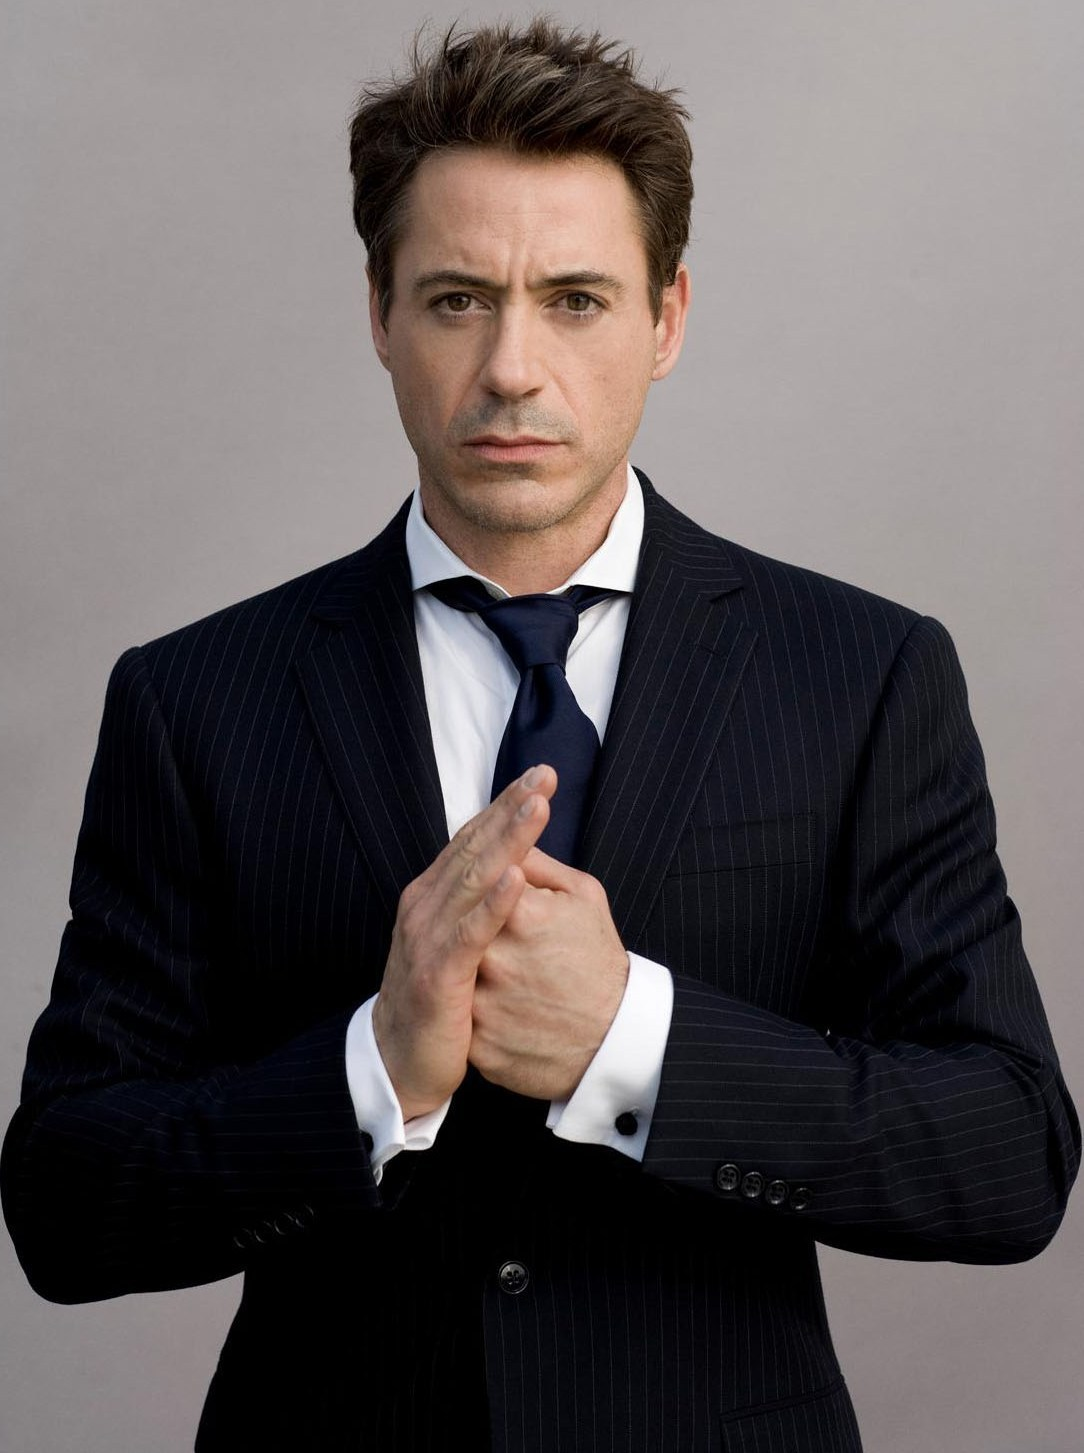 45551 Screensavers and Wallpapers Robert Downey Jr. for phone. Download People, Men, Robert Downey Jr. pictures for free